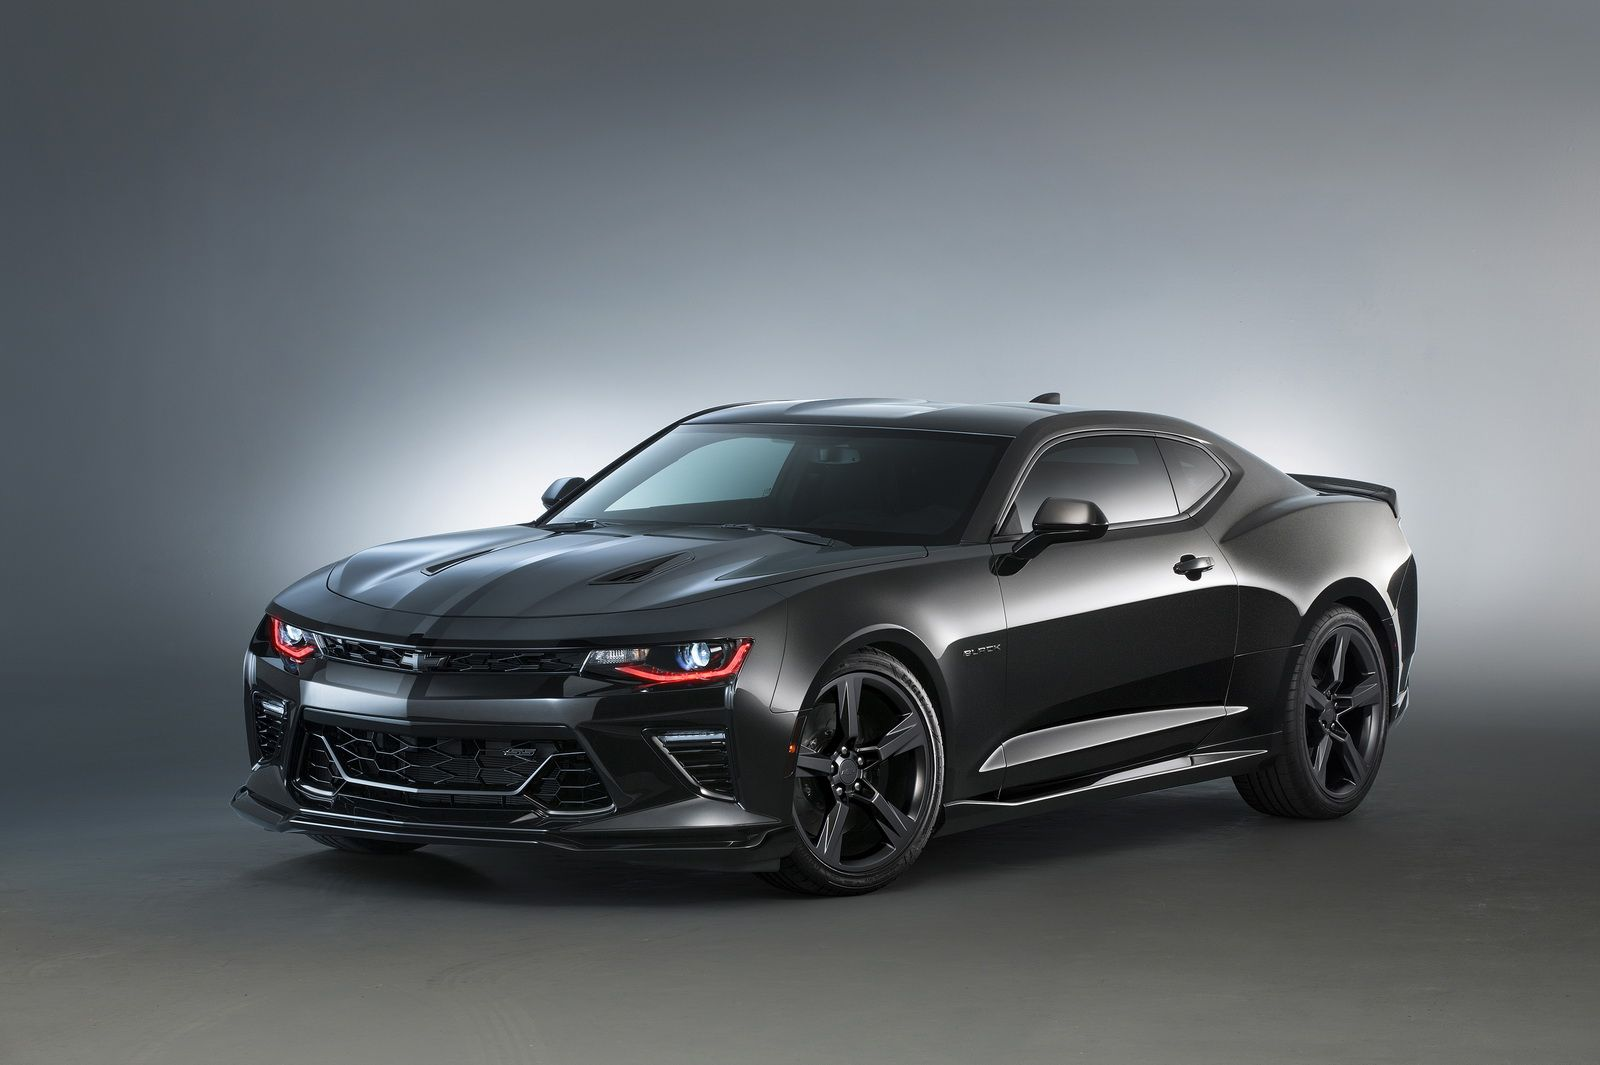 Chevy Unveils Superman S Least Favorite Camaro Along With 3 More Concepts Carscoops Camaro Camaro Concept Chevrolet Camaro